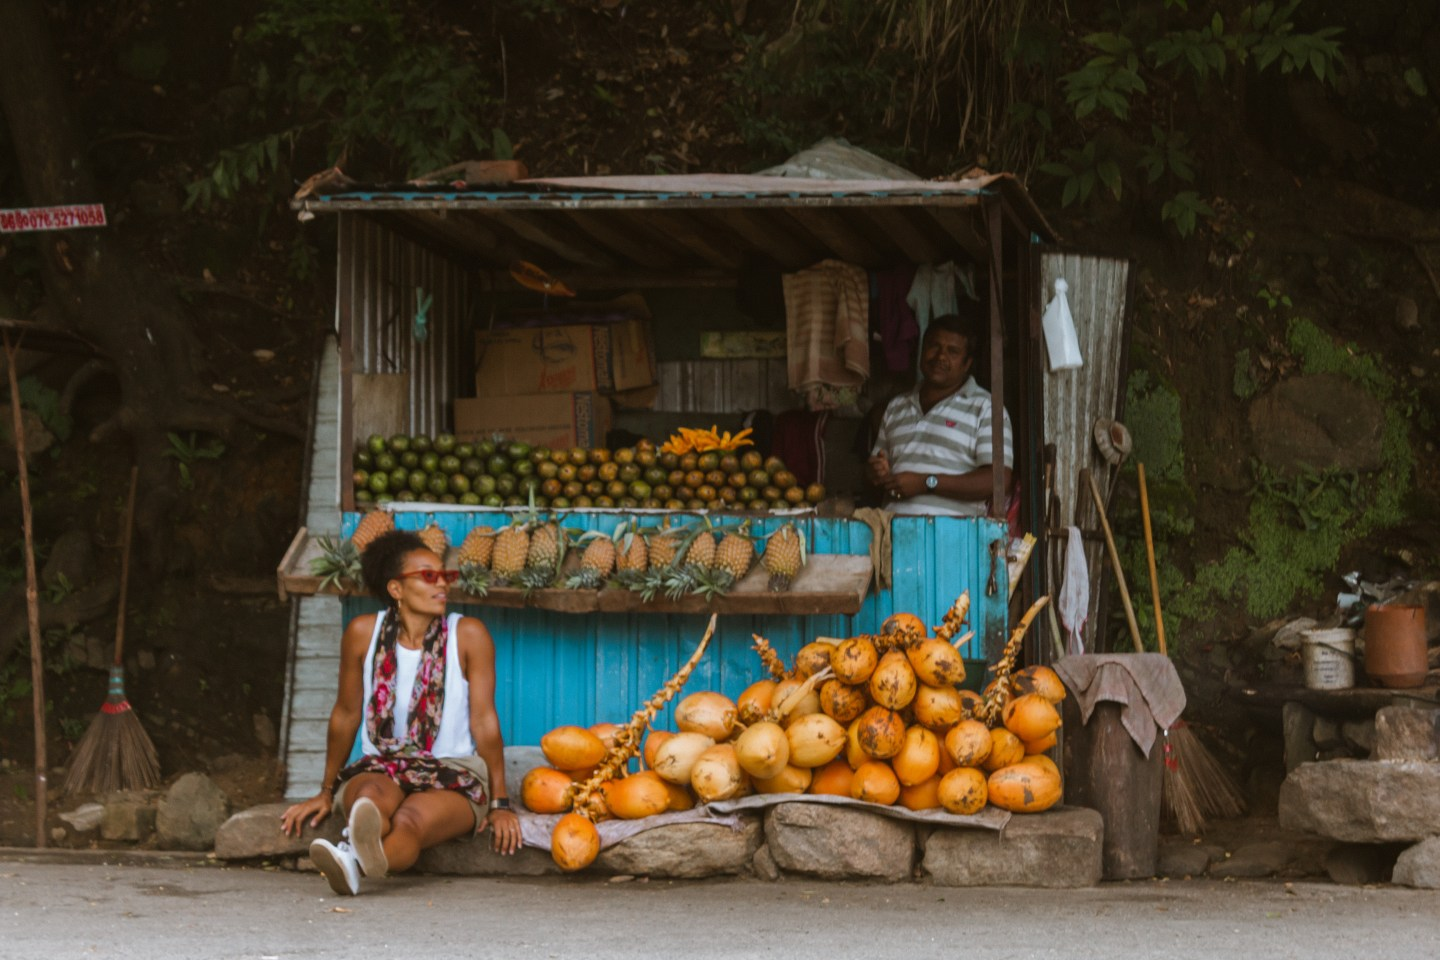 Illustrated by Sade - Woman sitting near fruit stand in Ella, Sri Lanka.